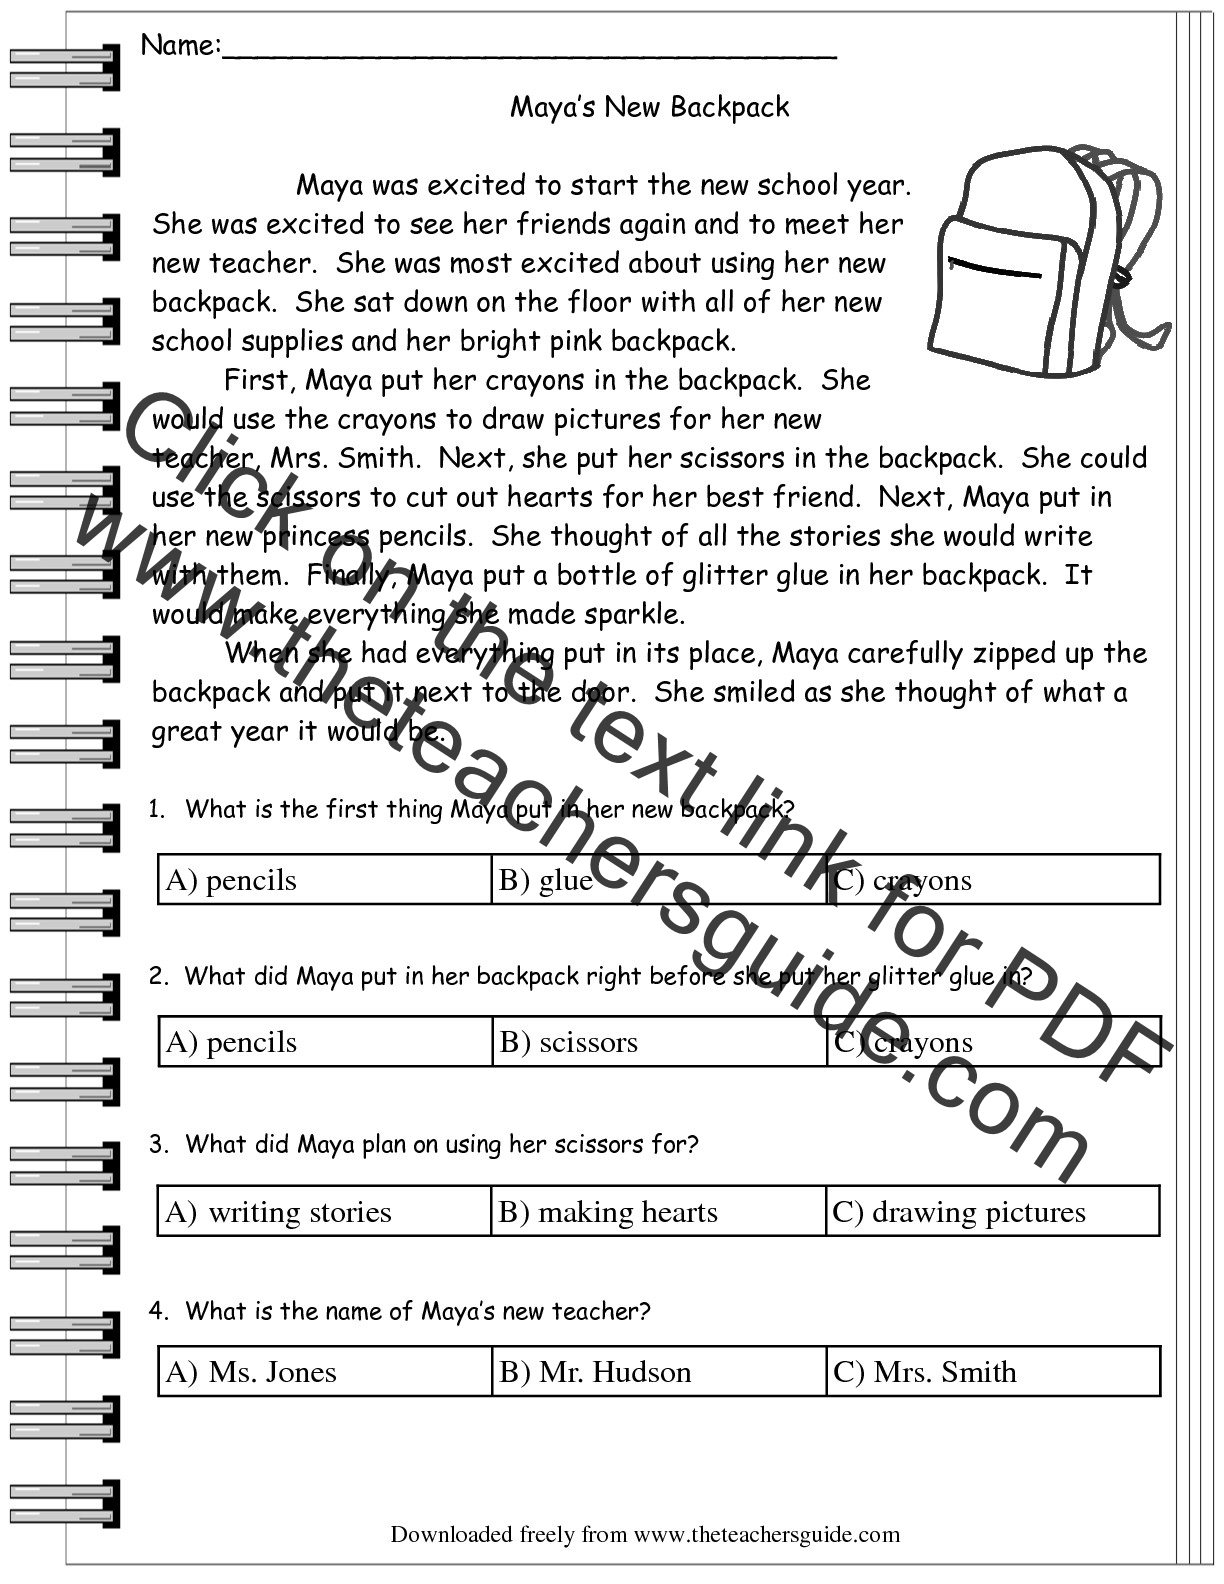 worksheet Third Grade Comprehension Worksheets Free reading comprehension worksheets 3rd grade free re d g w ksheet ksheets libr ry downlo nd pr t